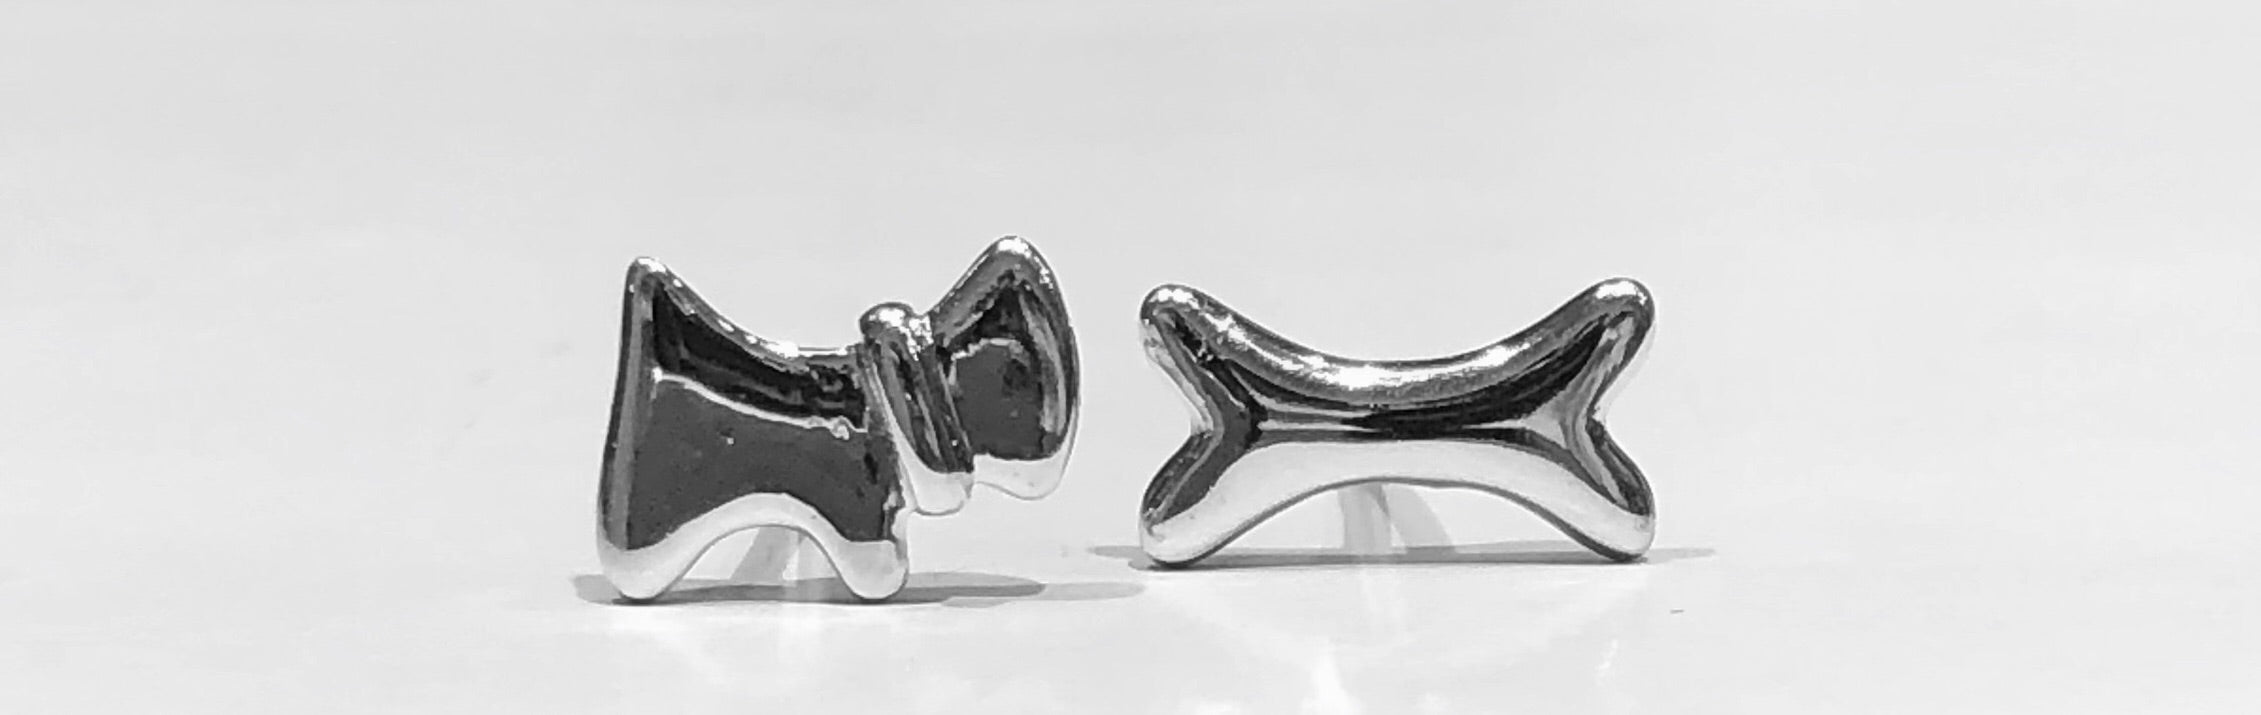 Paola Dog & Dog Bone Stud Earrings